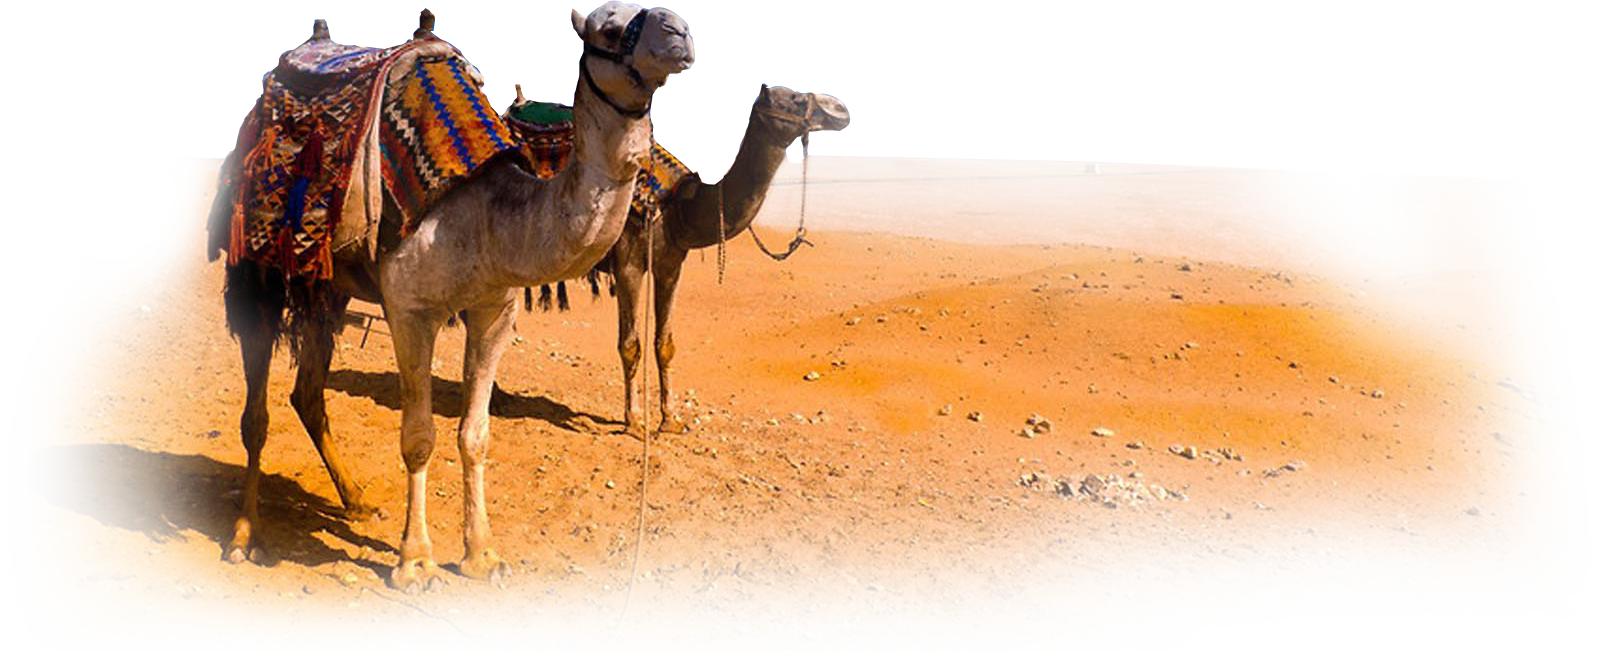 PNG File Name: Camel PlusPng.